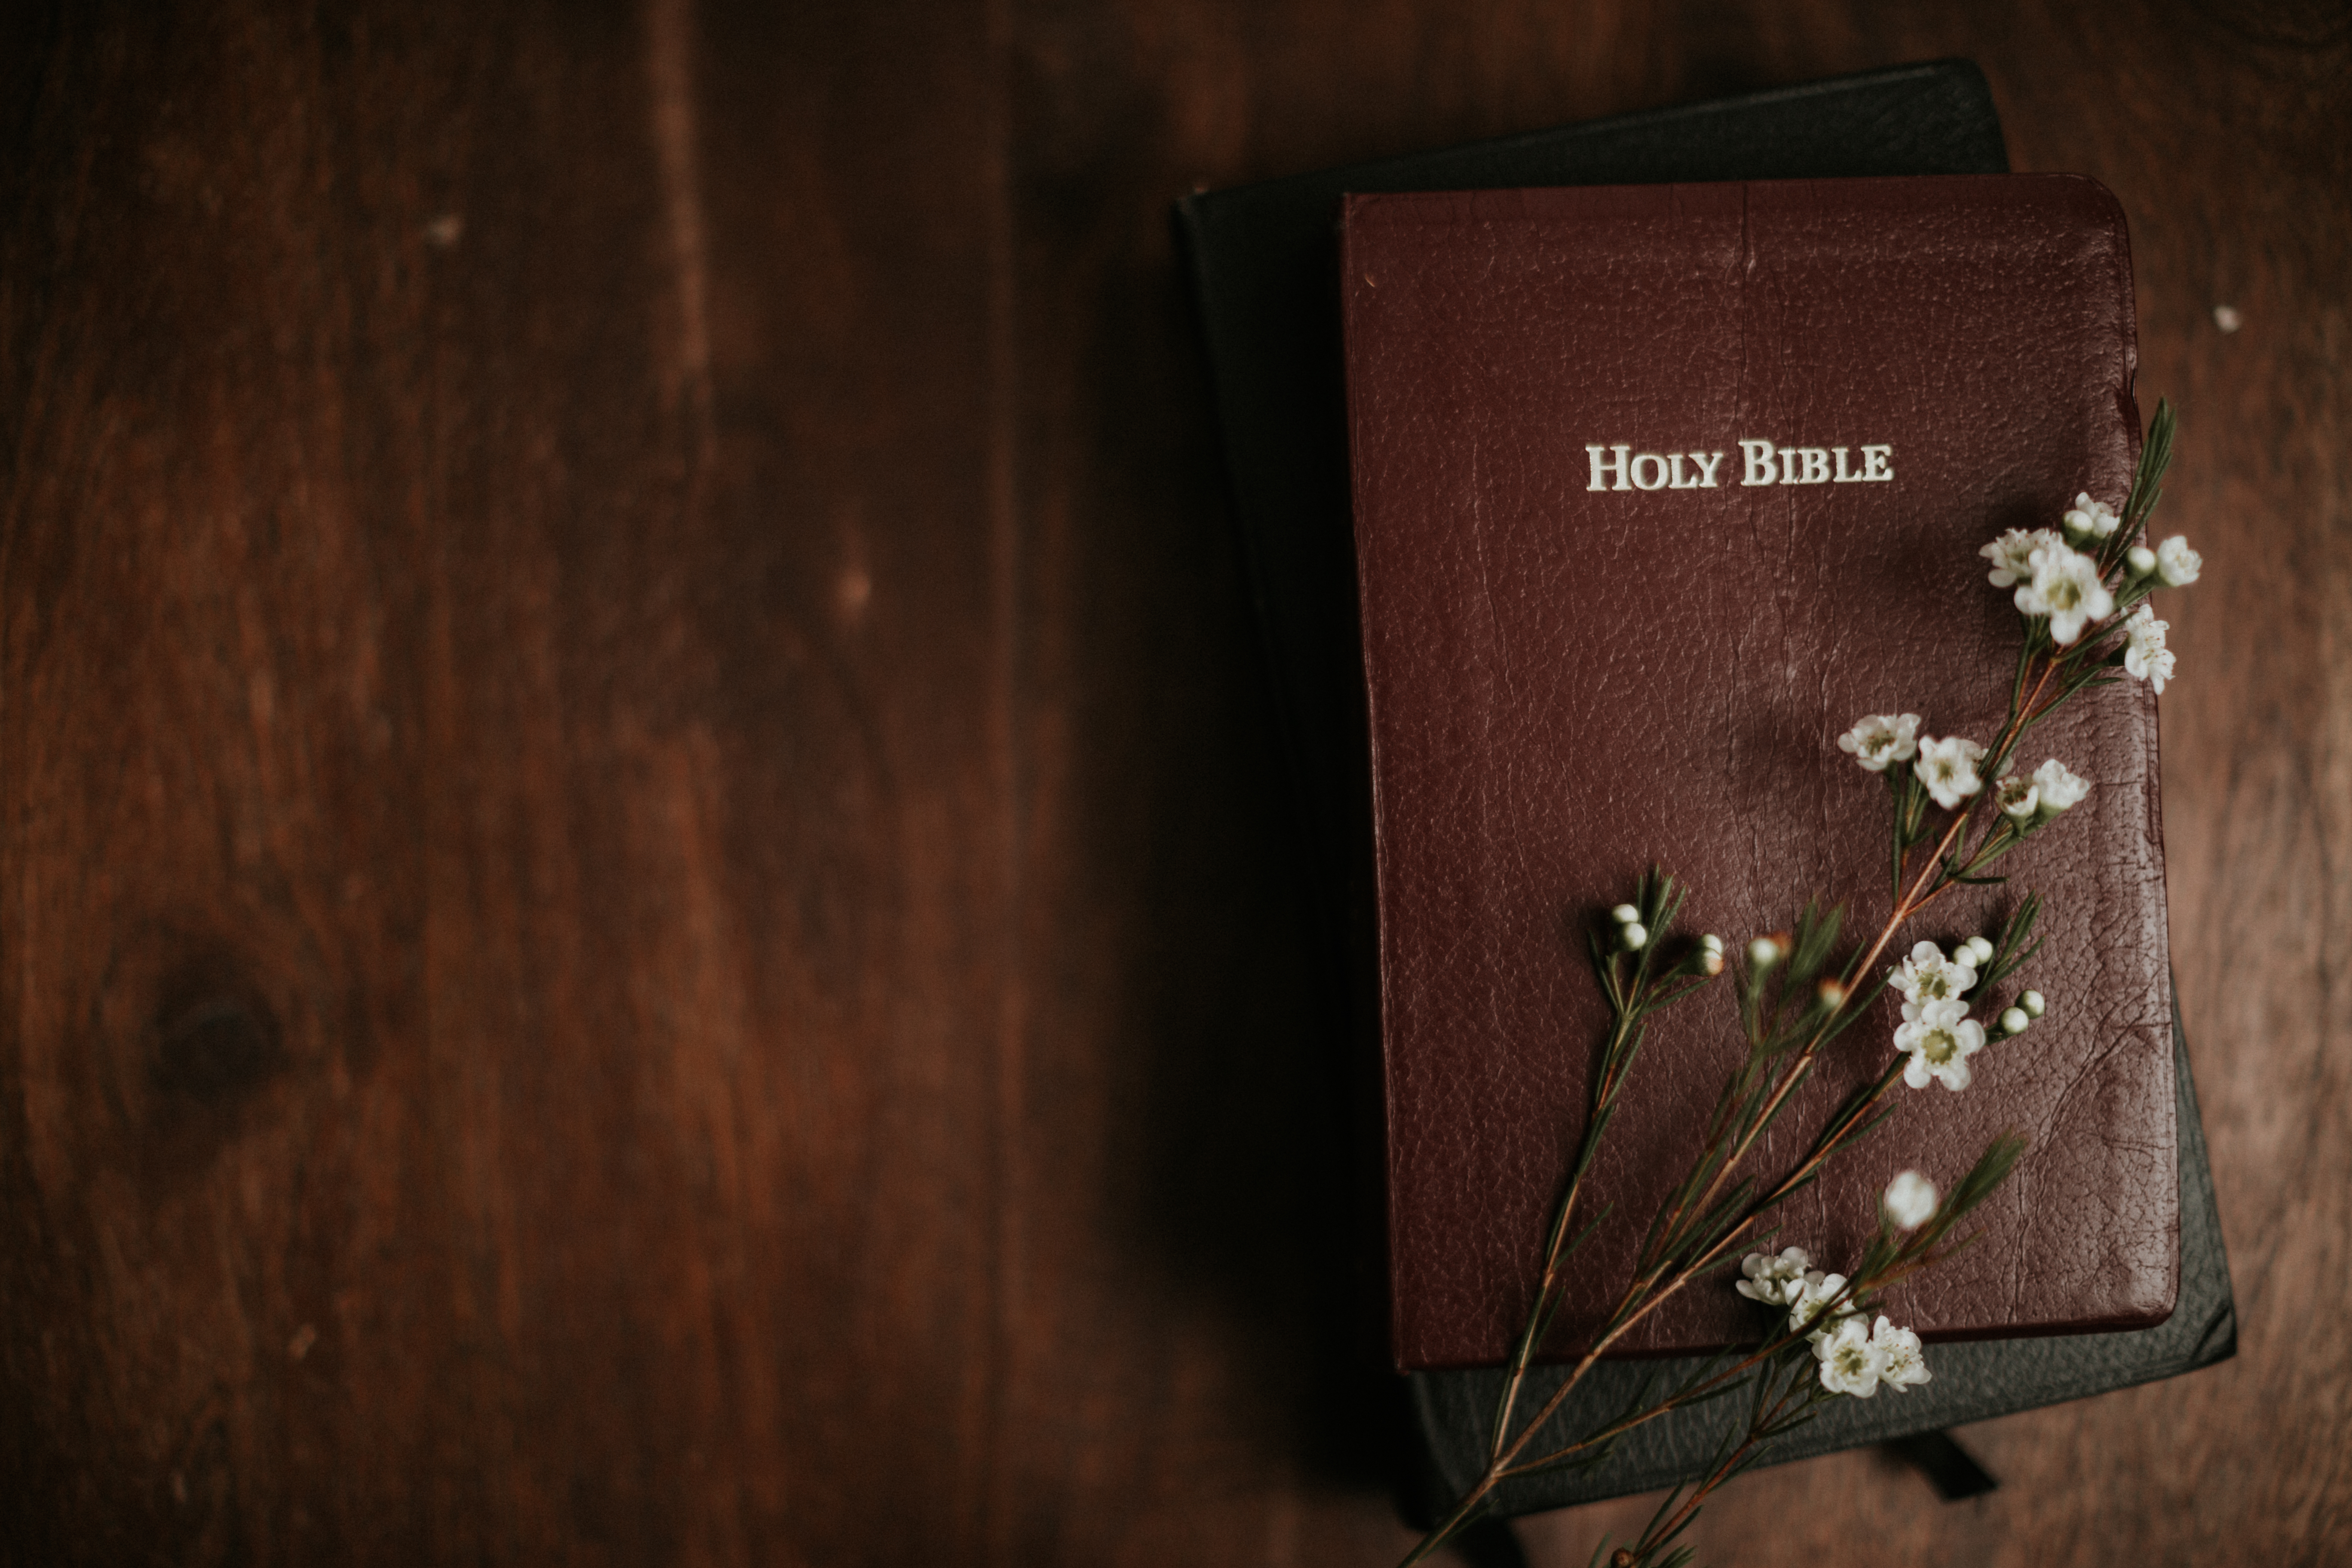 White wax flowers on closed Bibles